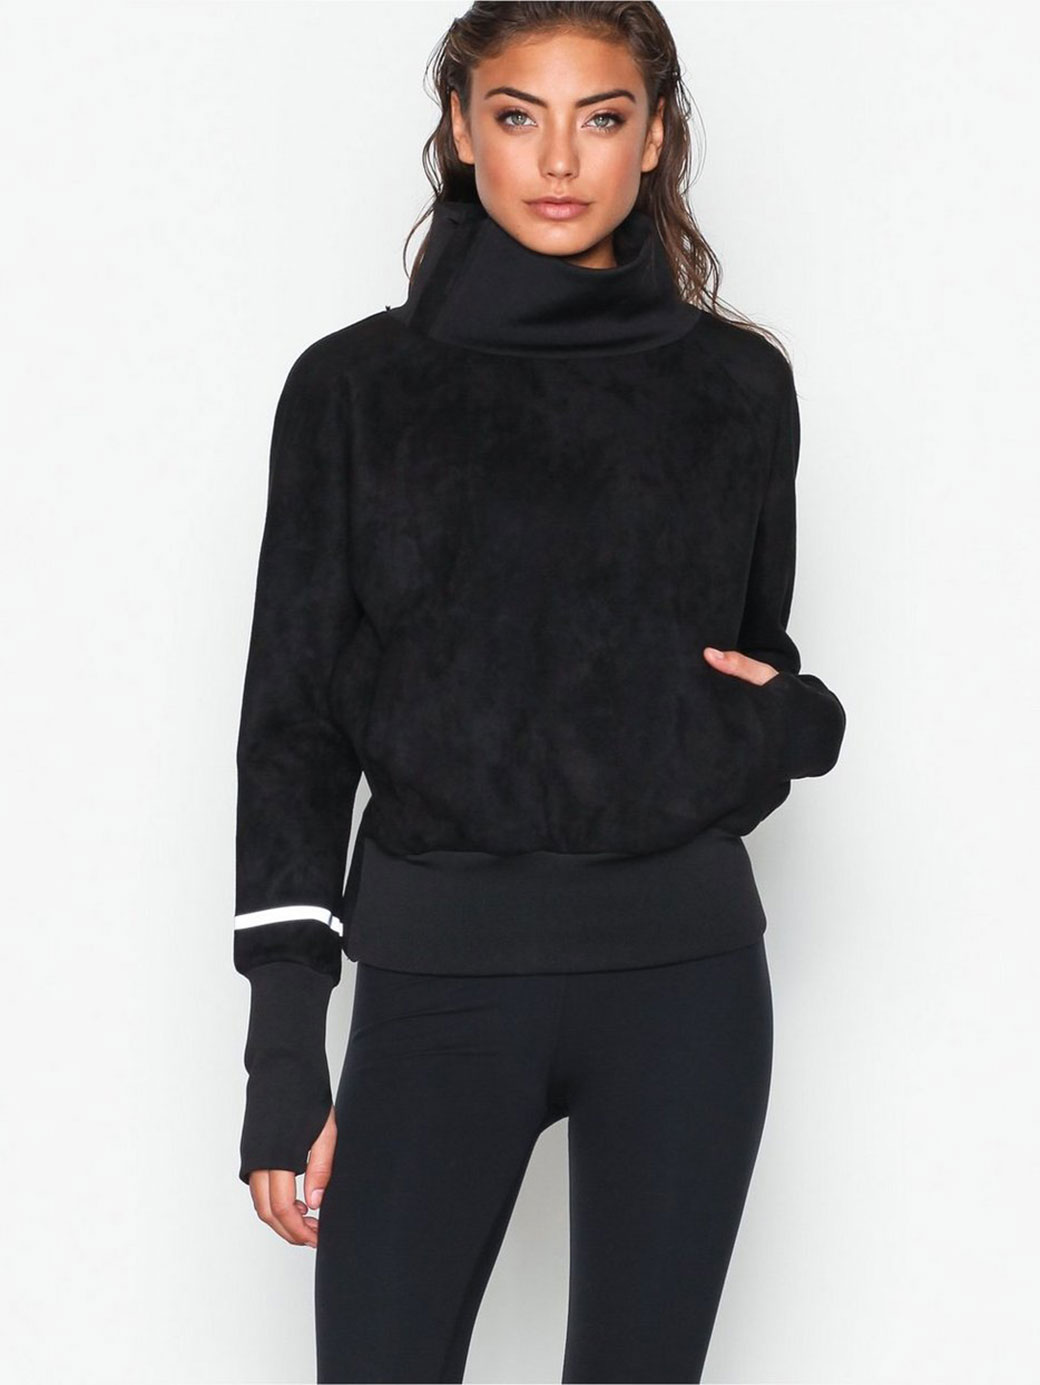 Fashionablefit Jumper 8